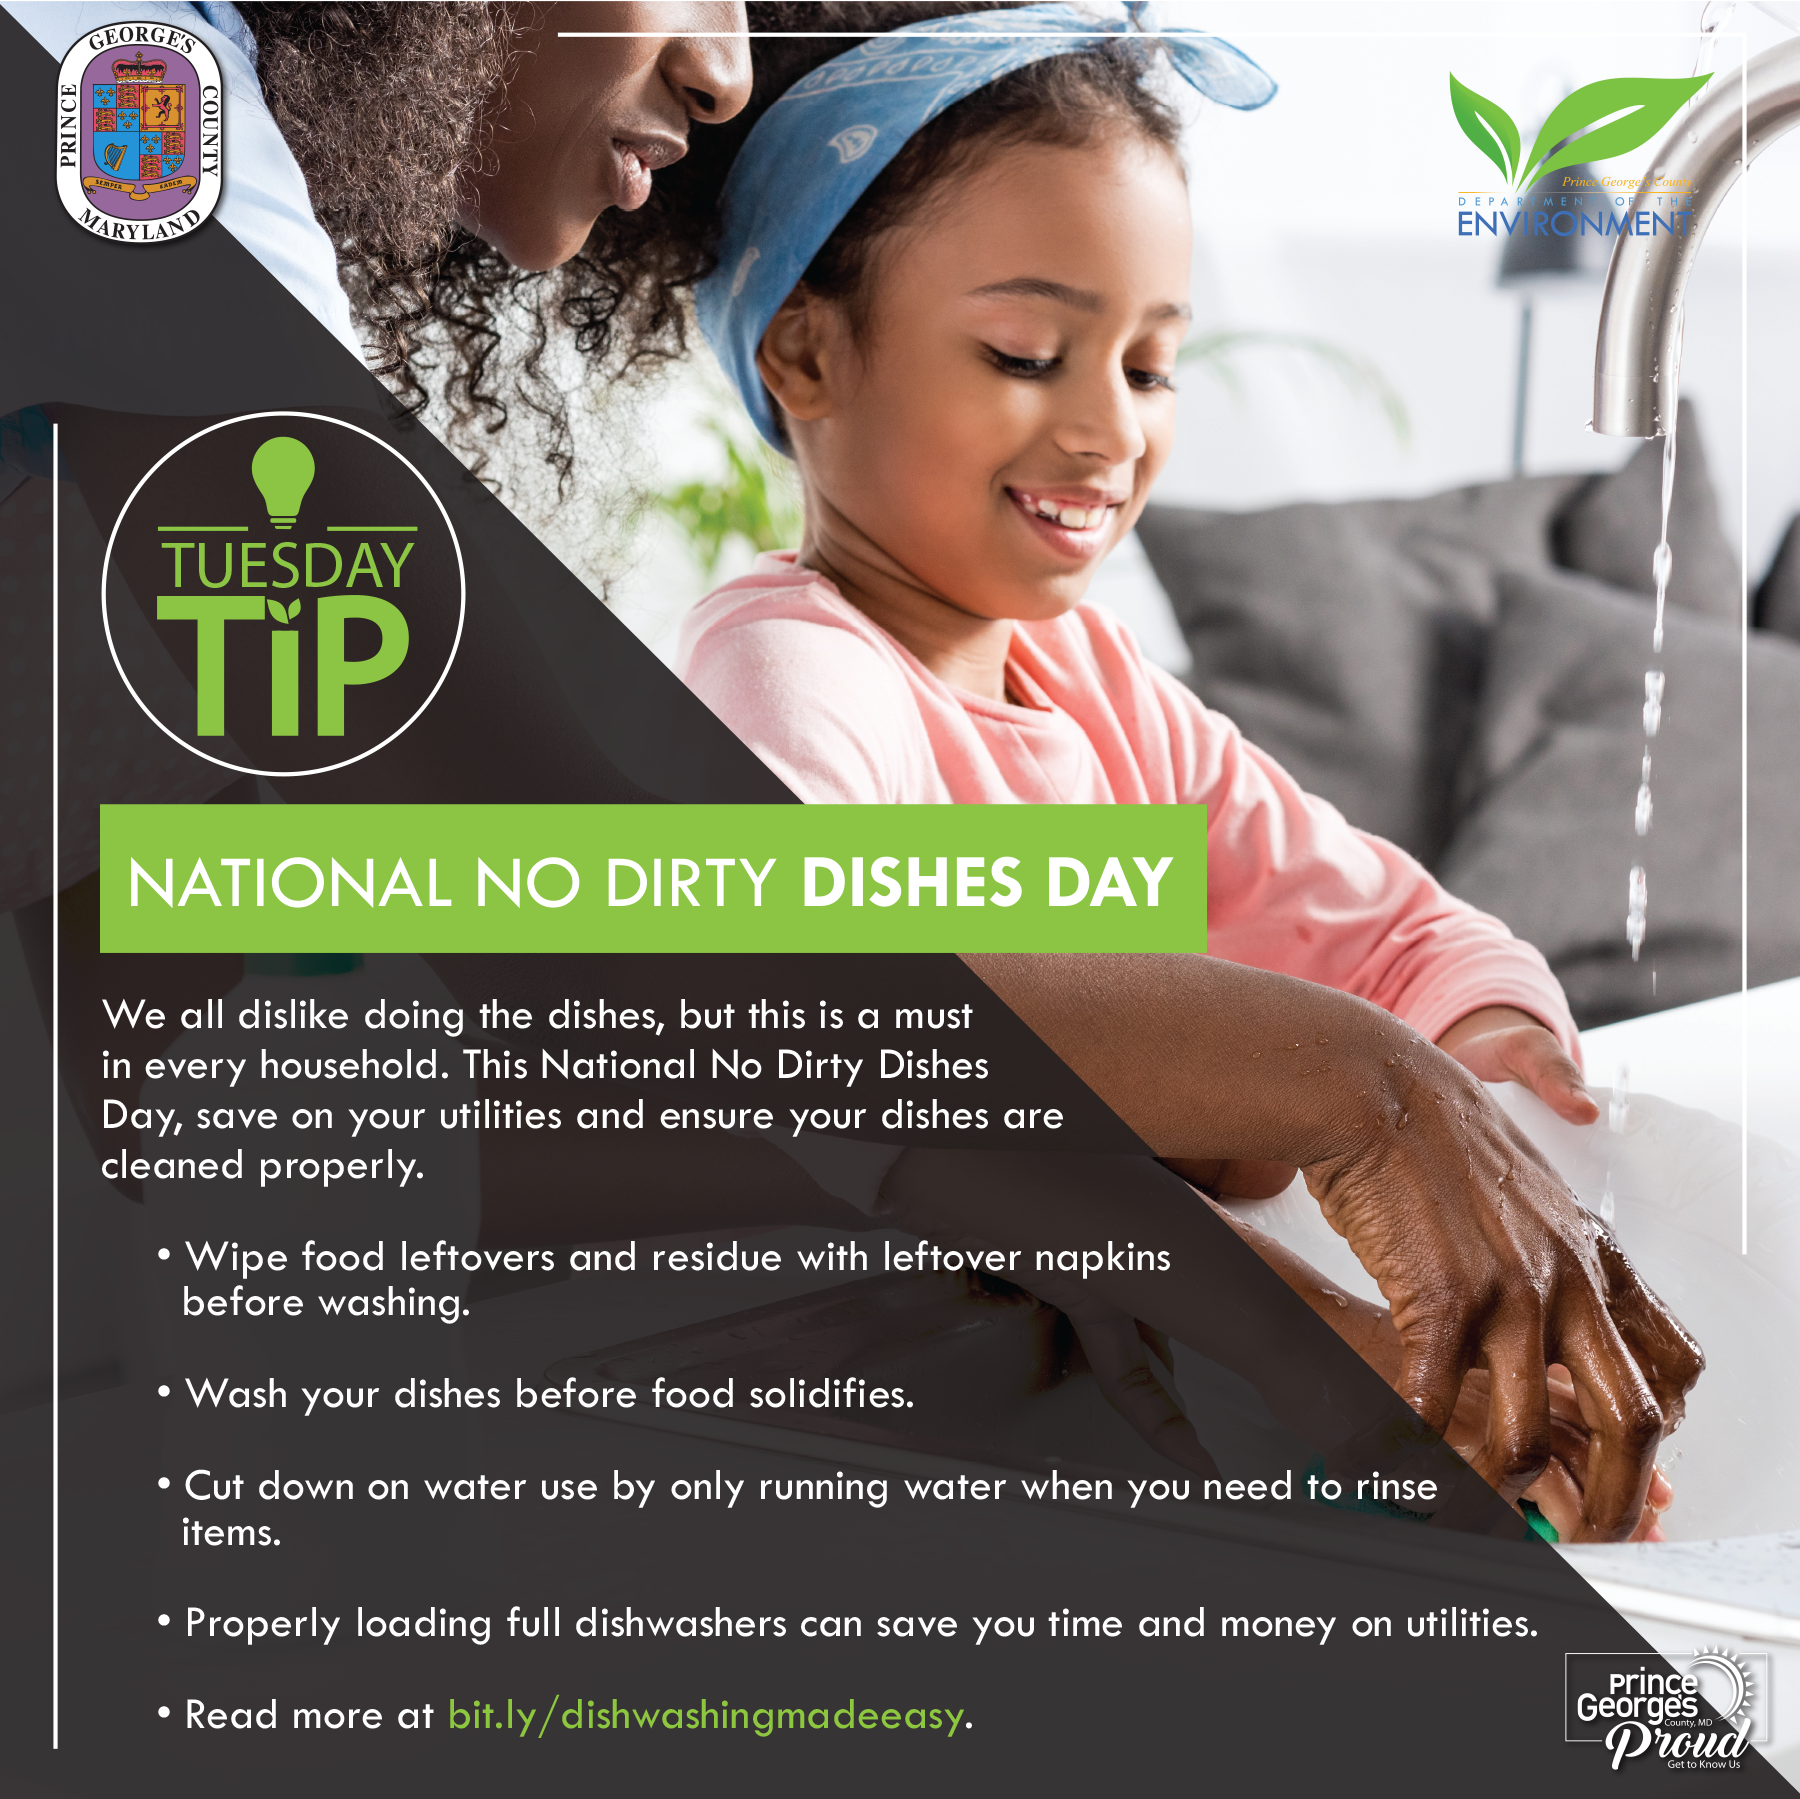 Tues Tip 5.11.21 Dishes eng